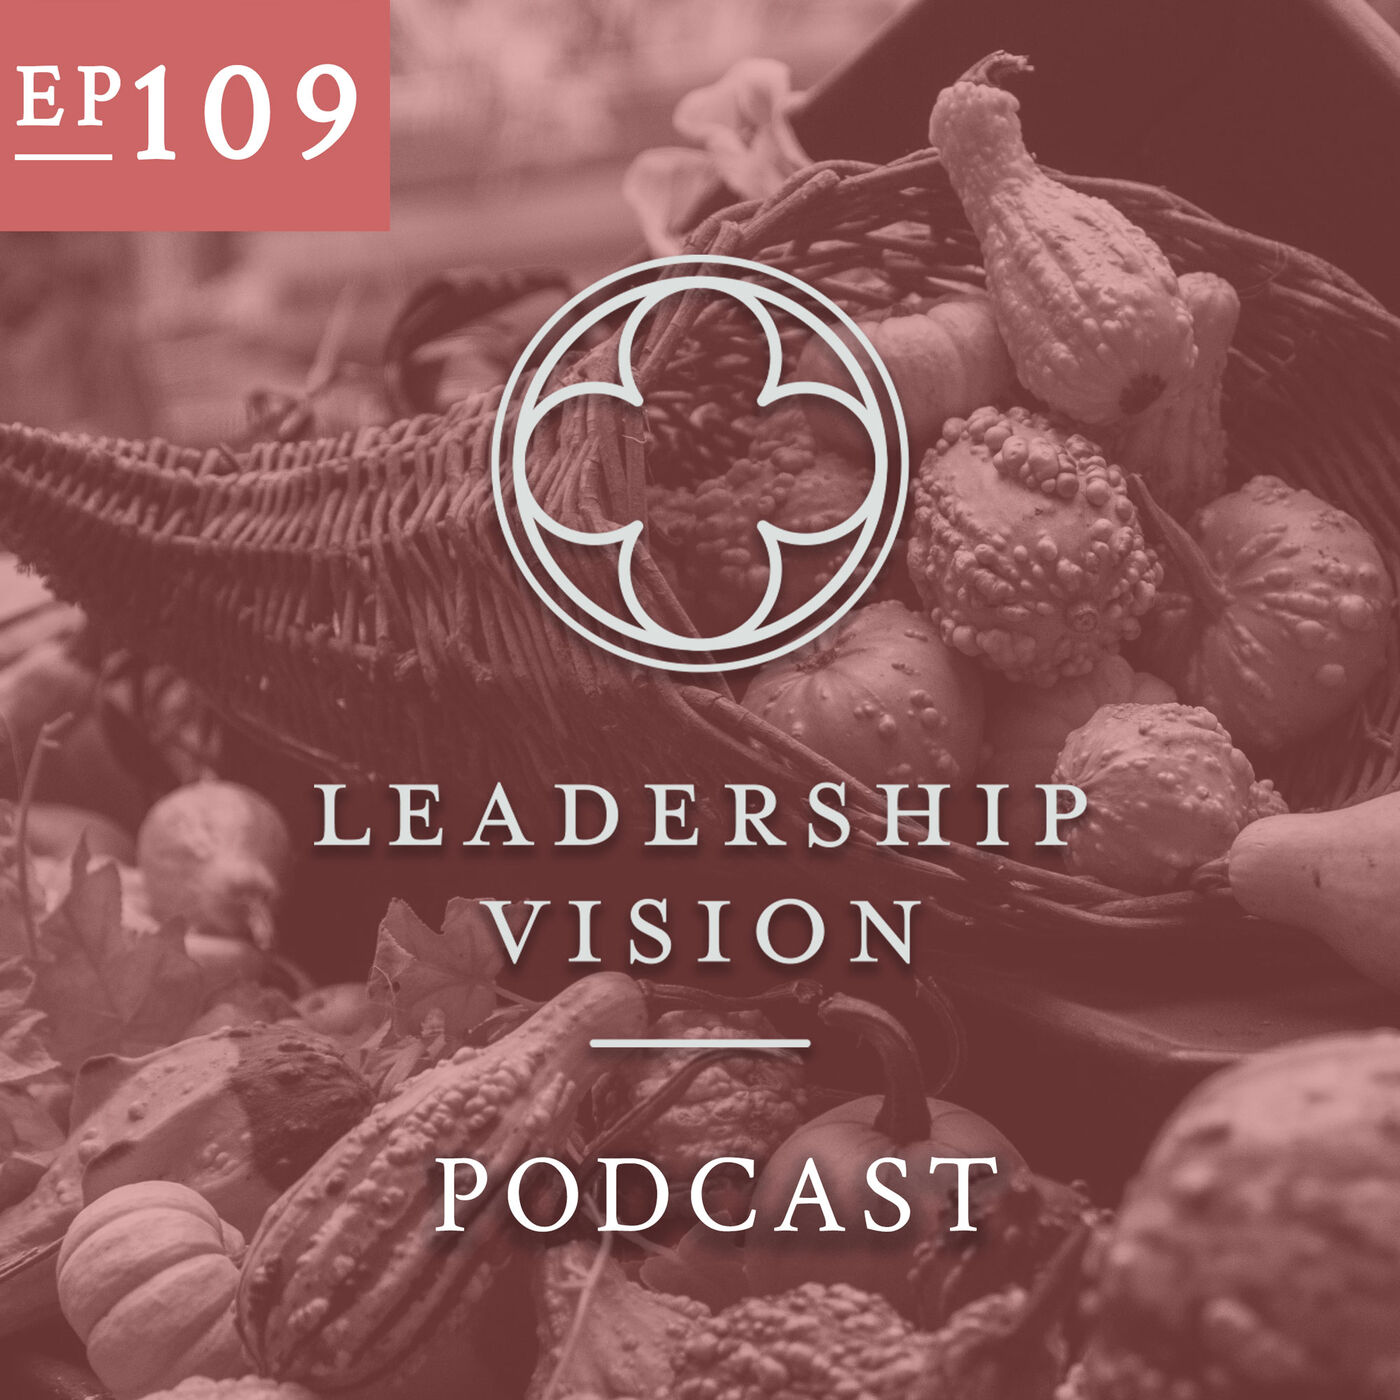 What We're Grateful For At Leadership Vision In 2019